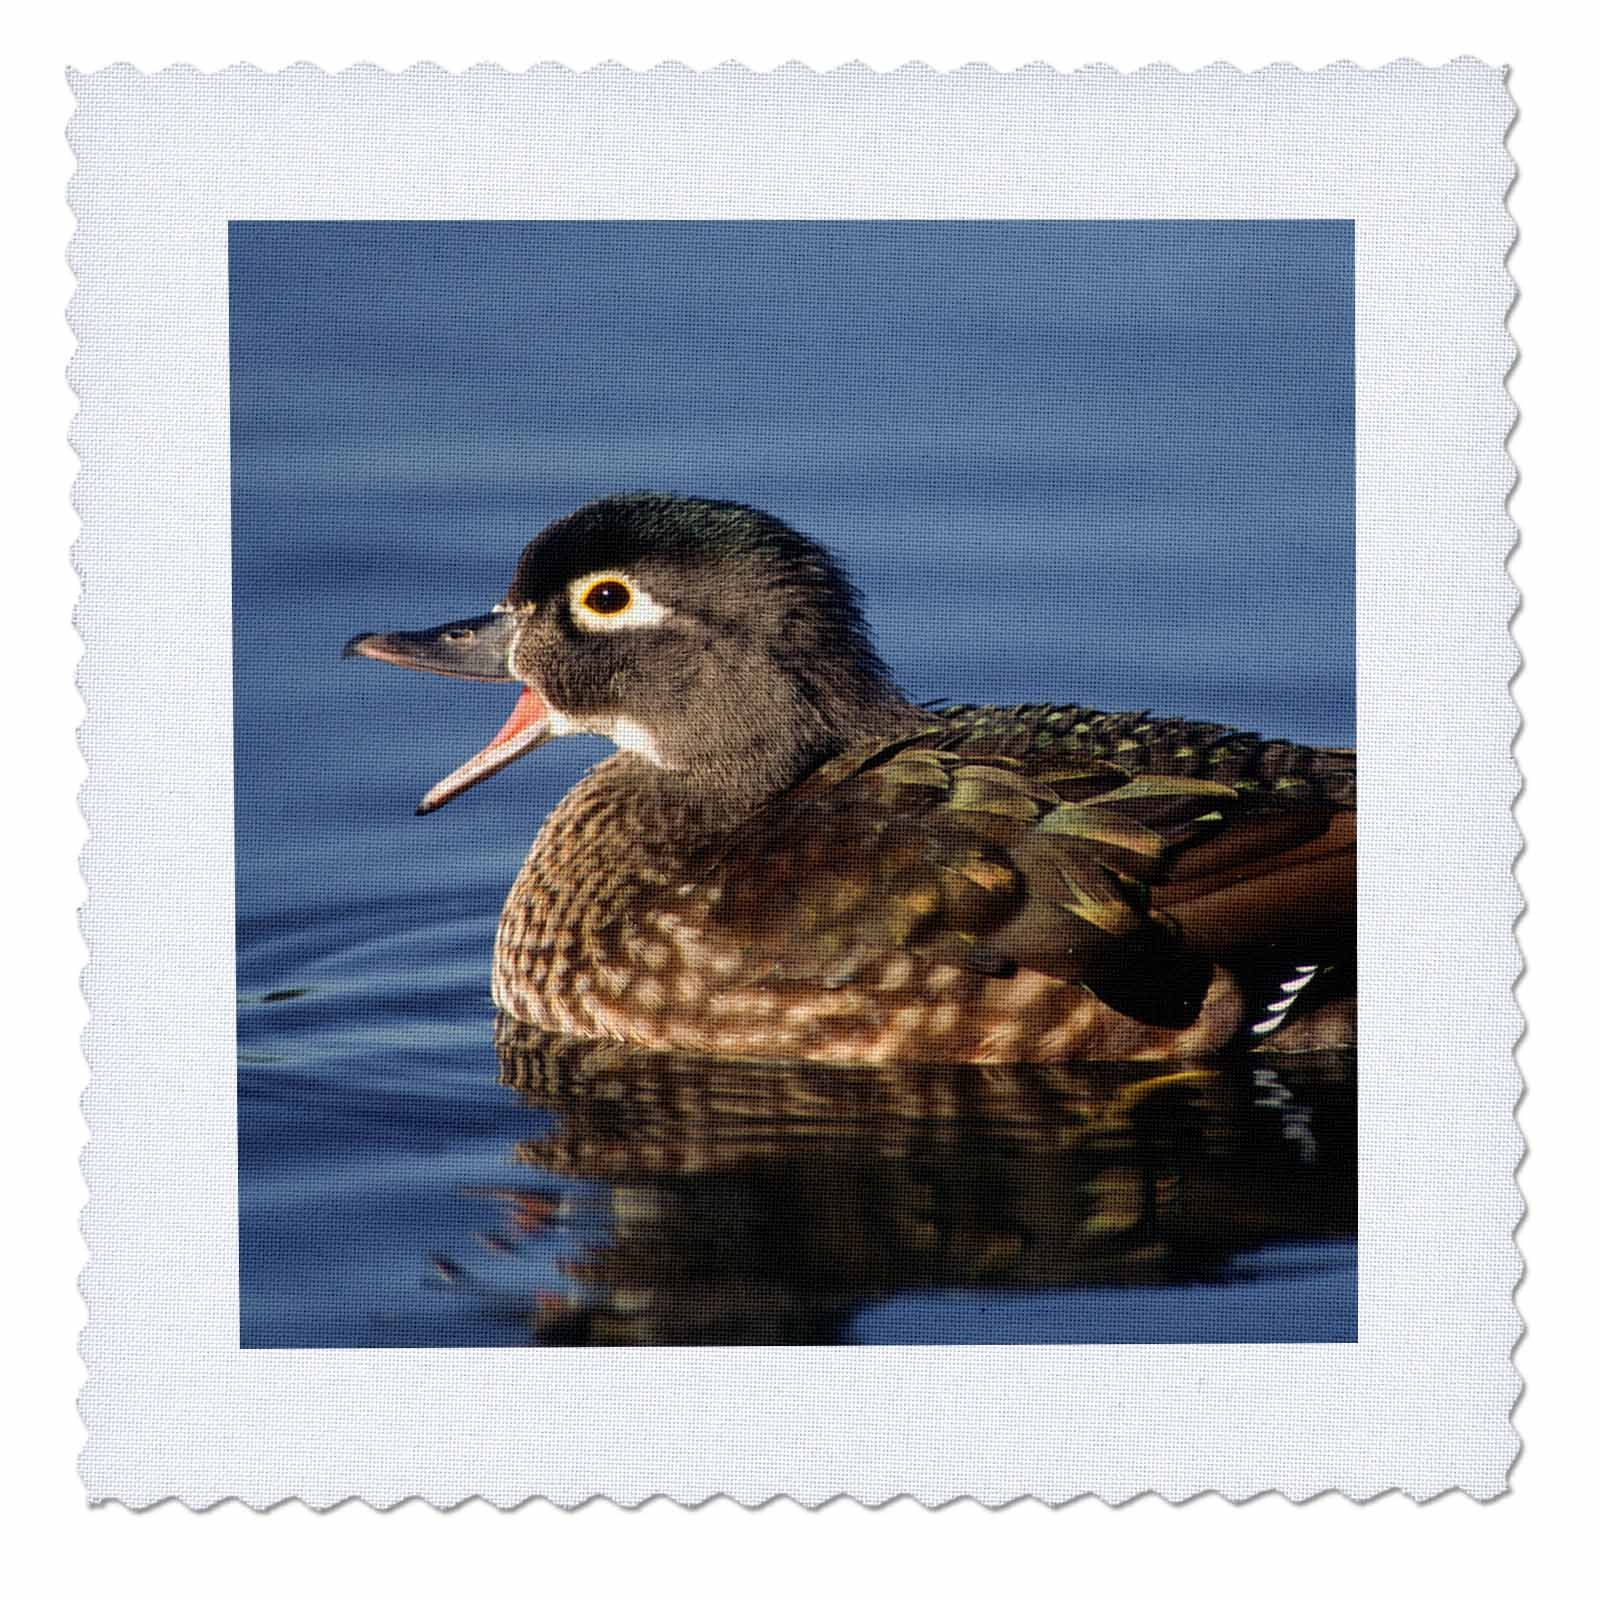 3dRose Danita Delimont - Ducks - Wood duck, female, Aix sponsa, calling, western Oregon, USA - 22x22 inch quilt square (qs_259888_9)